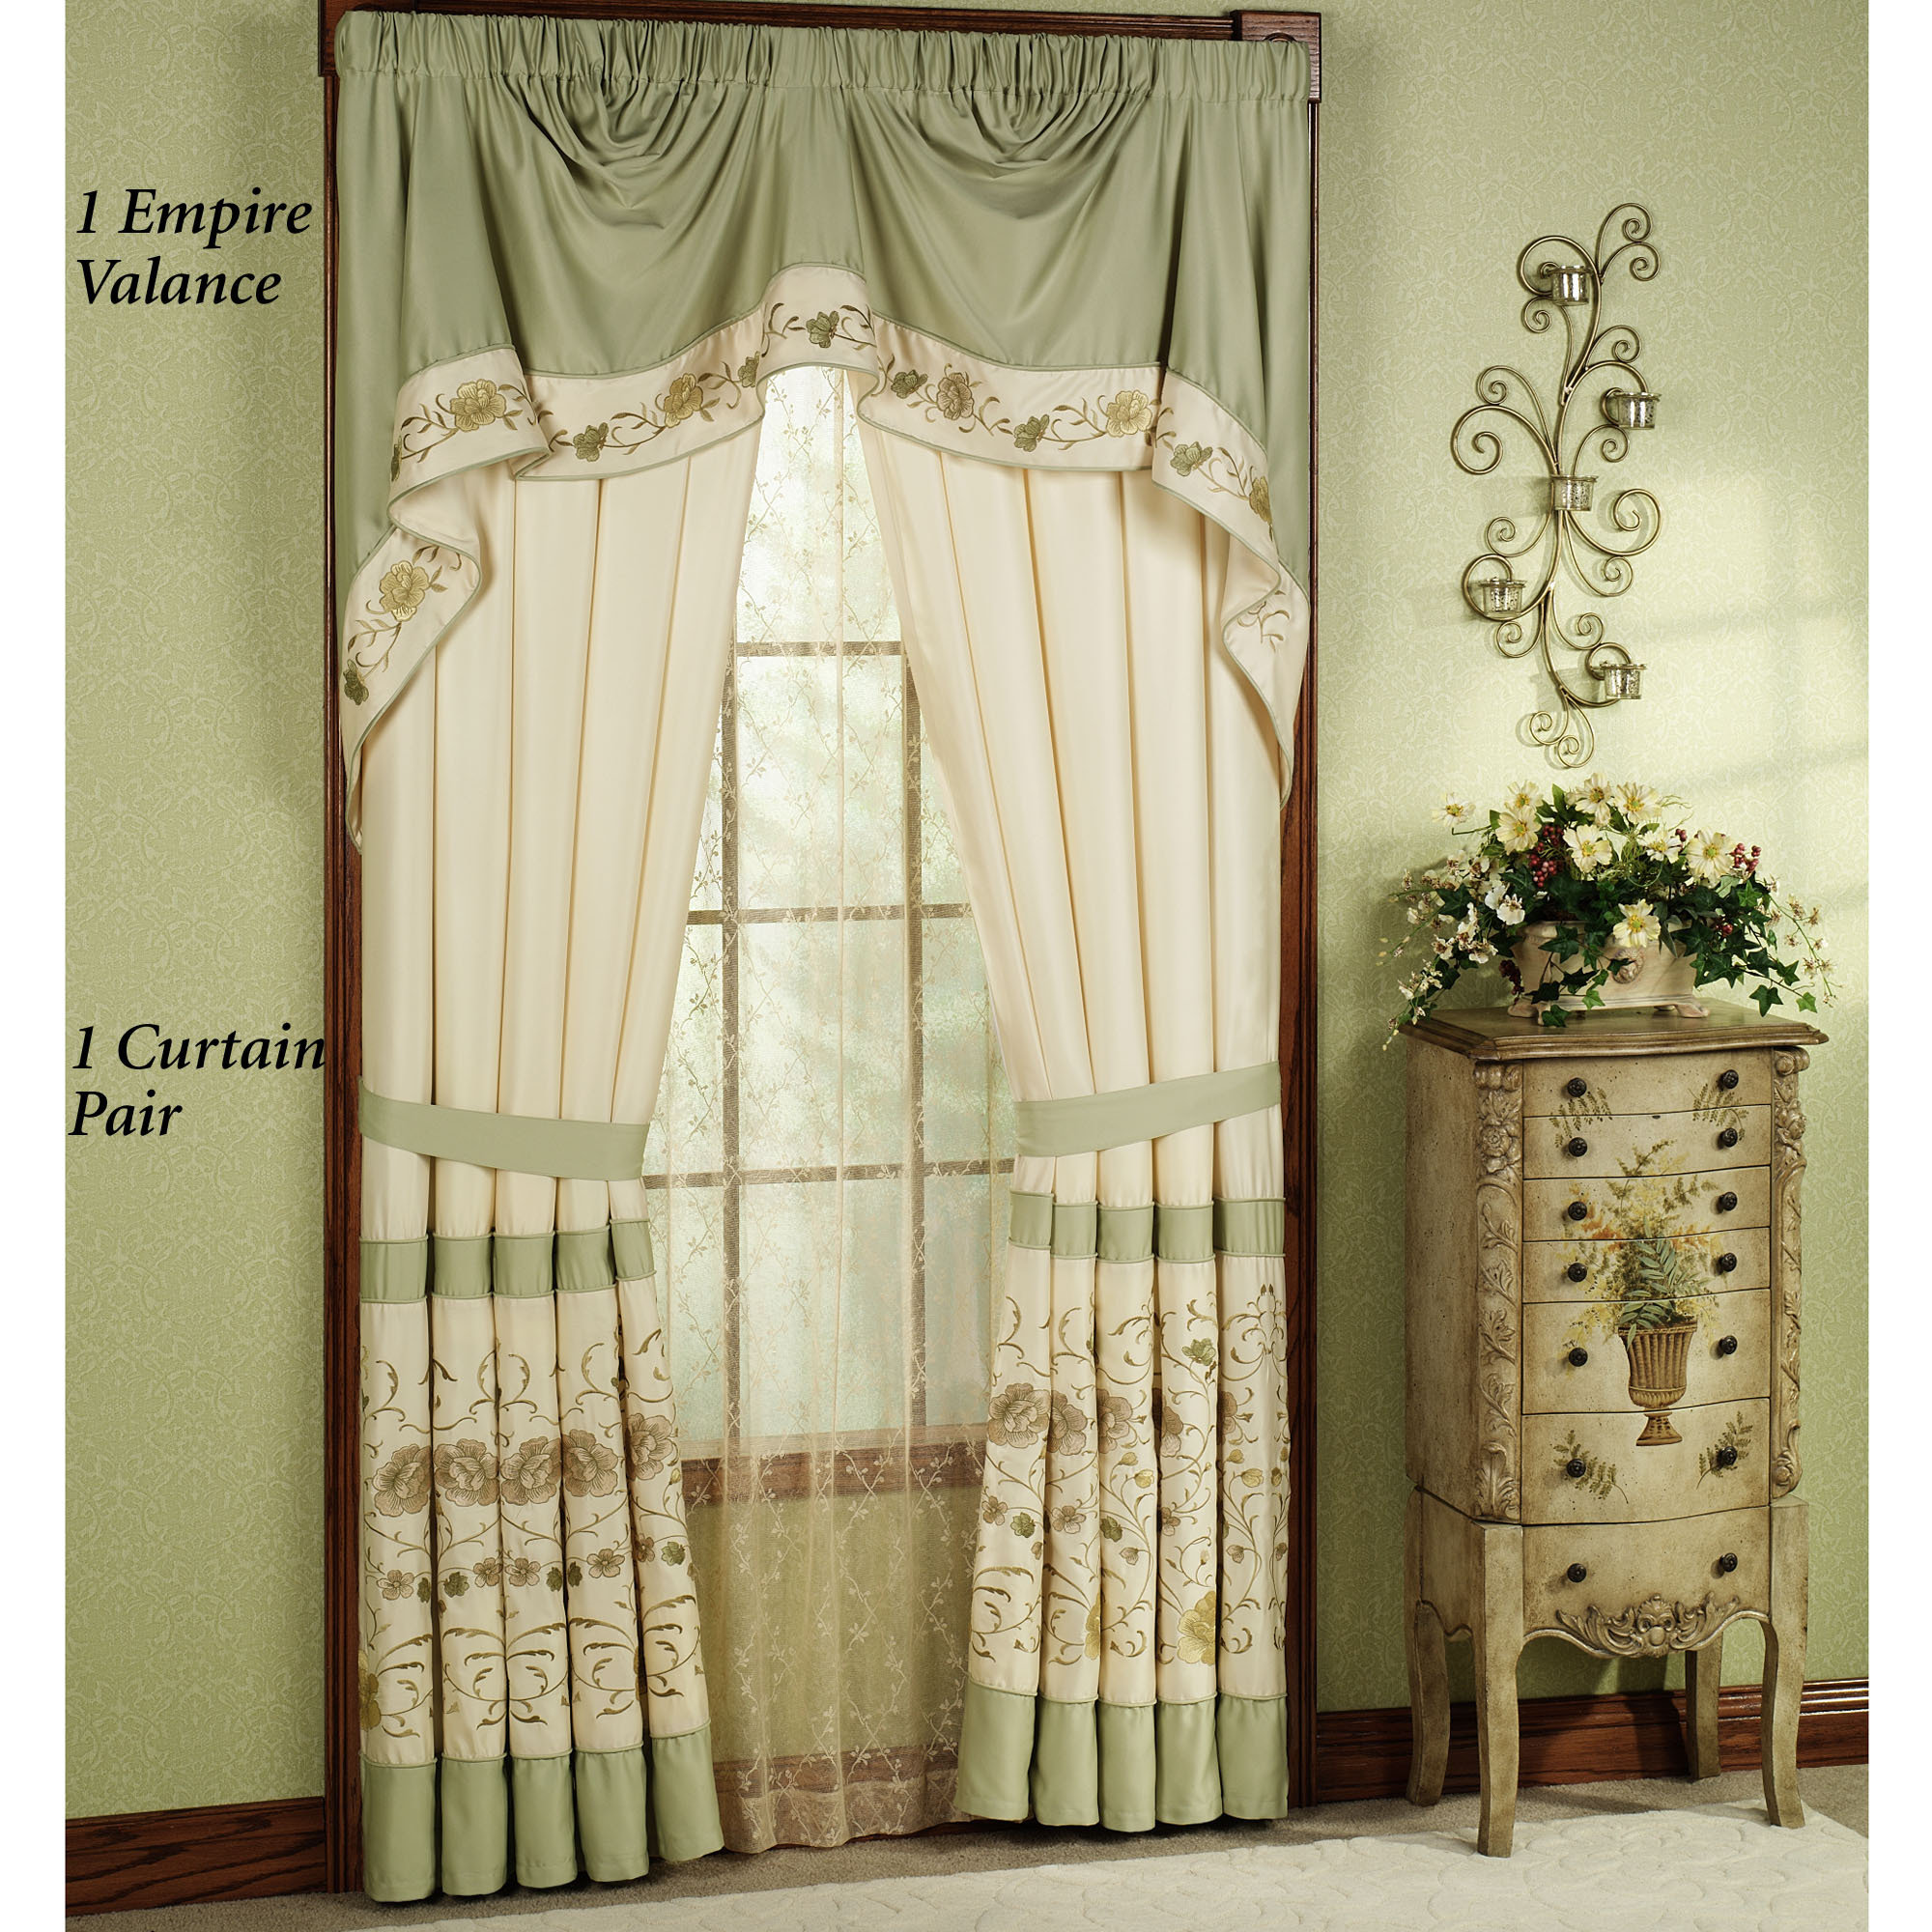 Dining room curtain styles